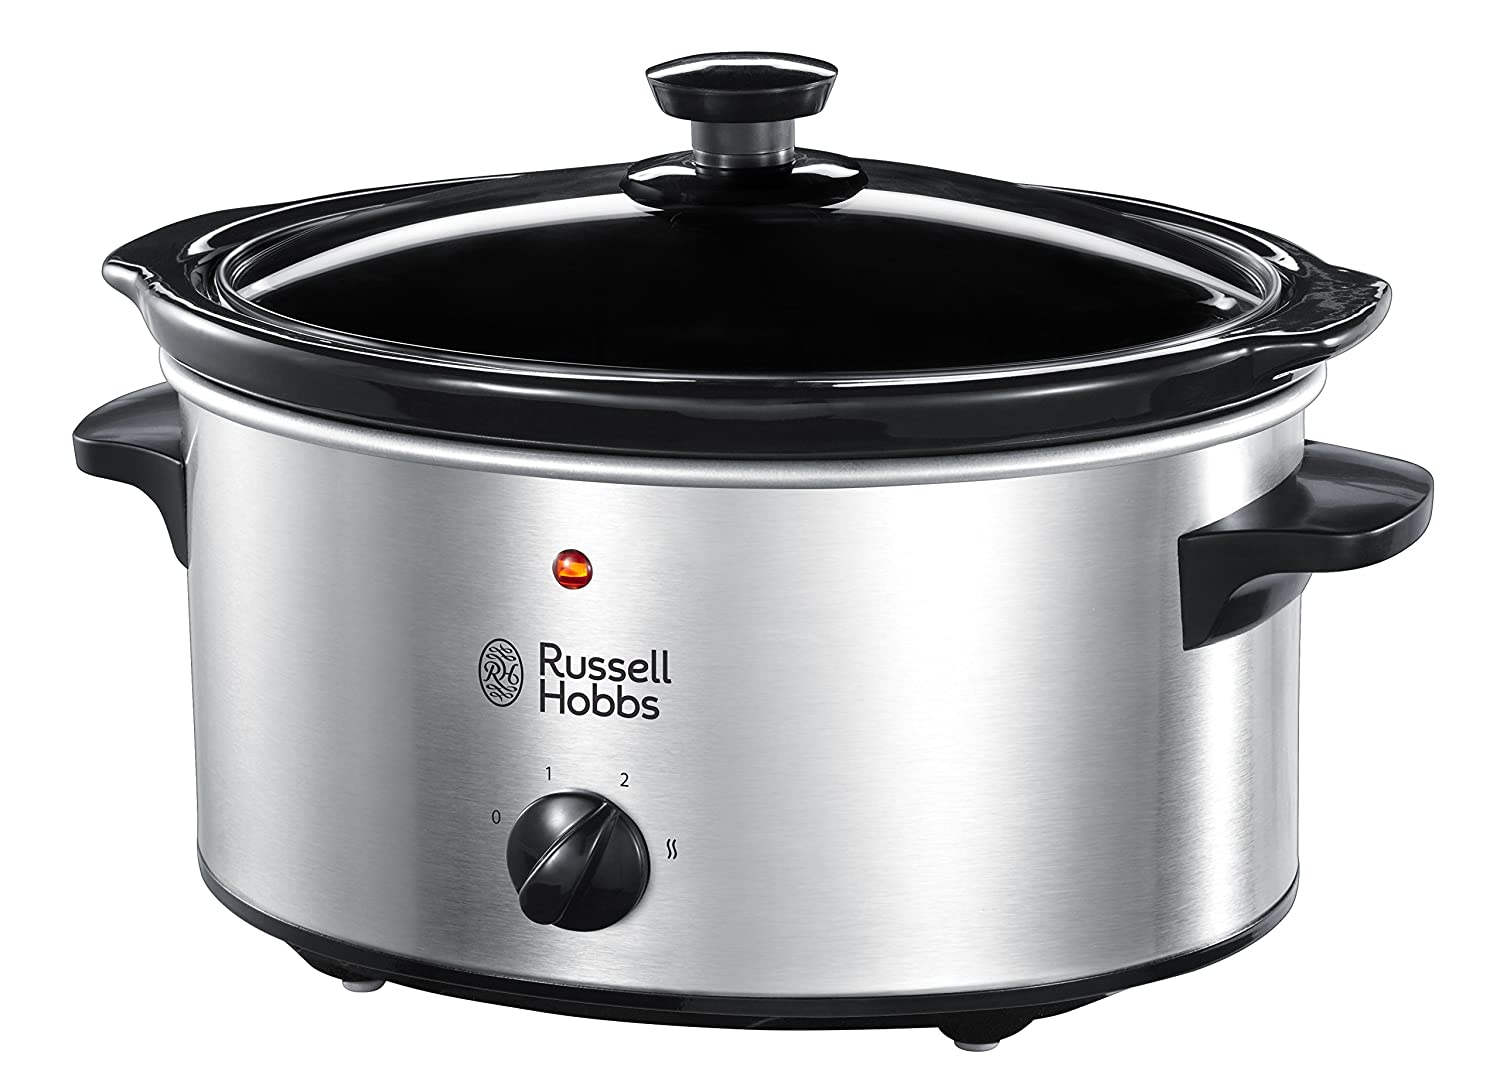 russell hobbs slow cooker instructions 13792